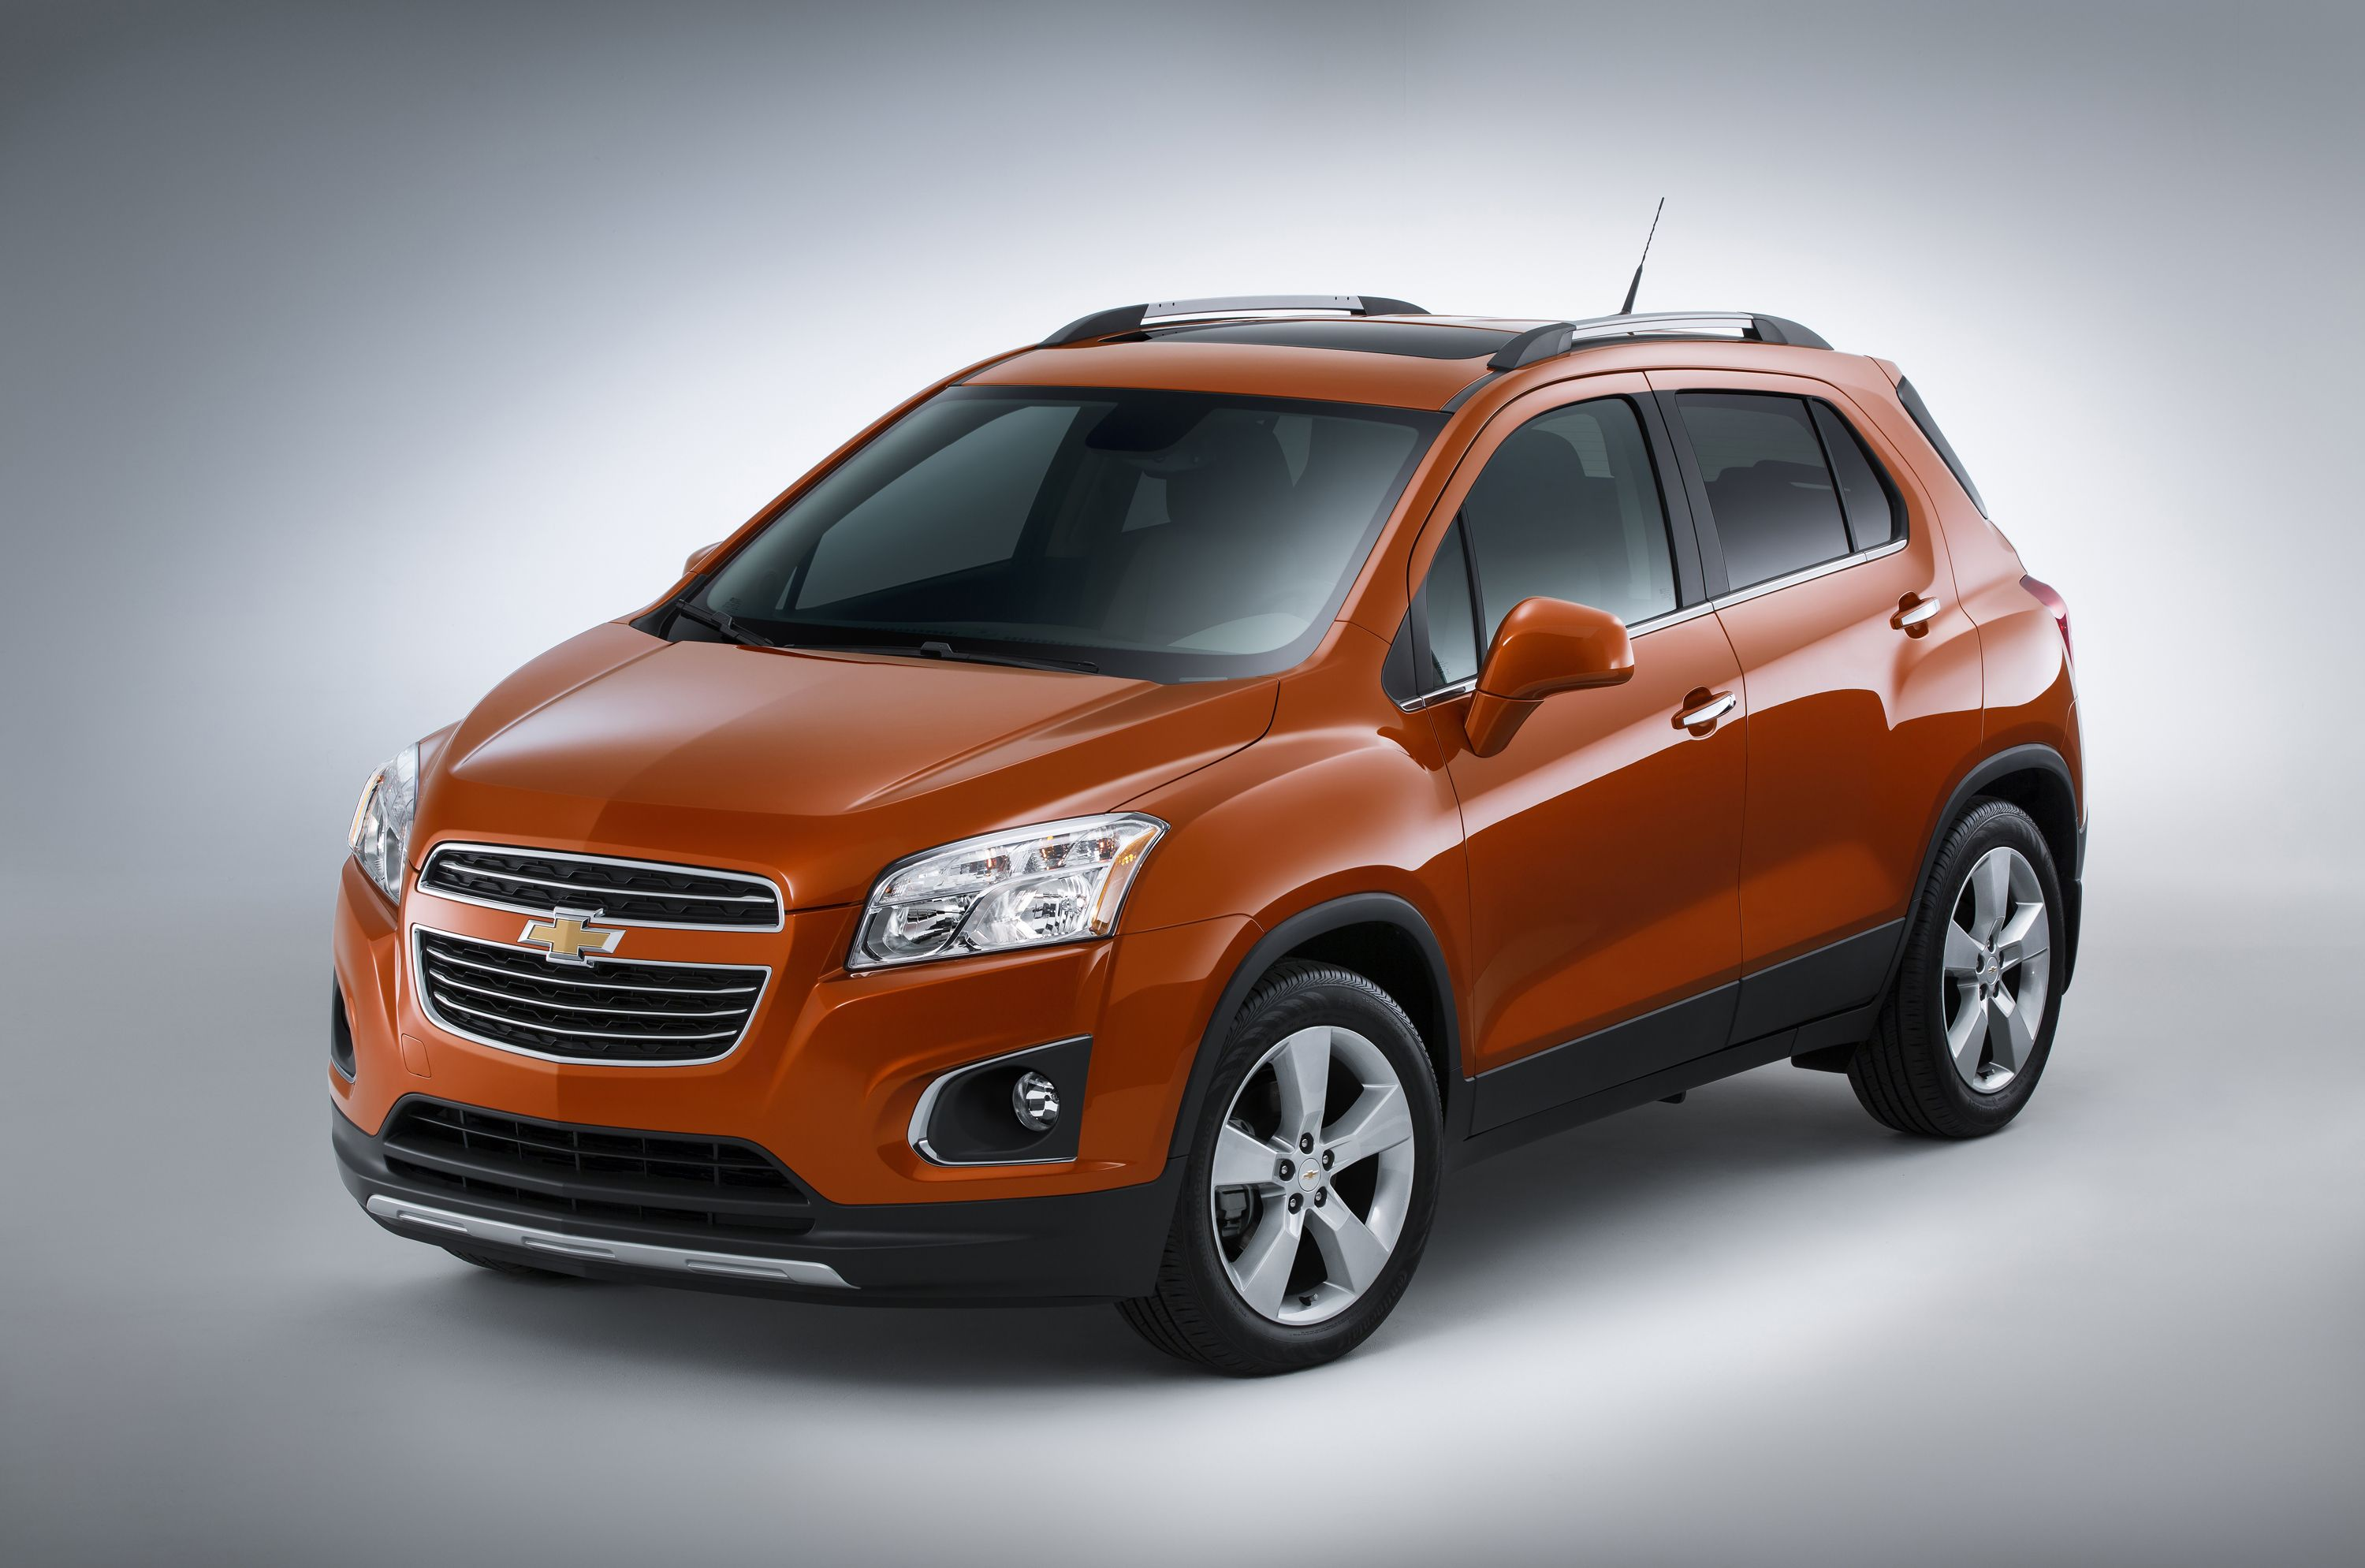 2015 chevrolet trax to start at 20 995 new chevy small suv positioned to be strong competitor